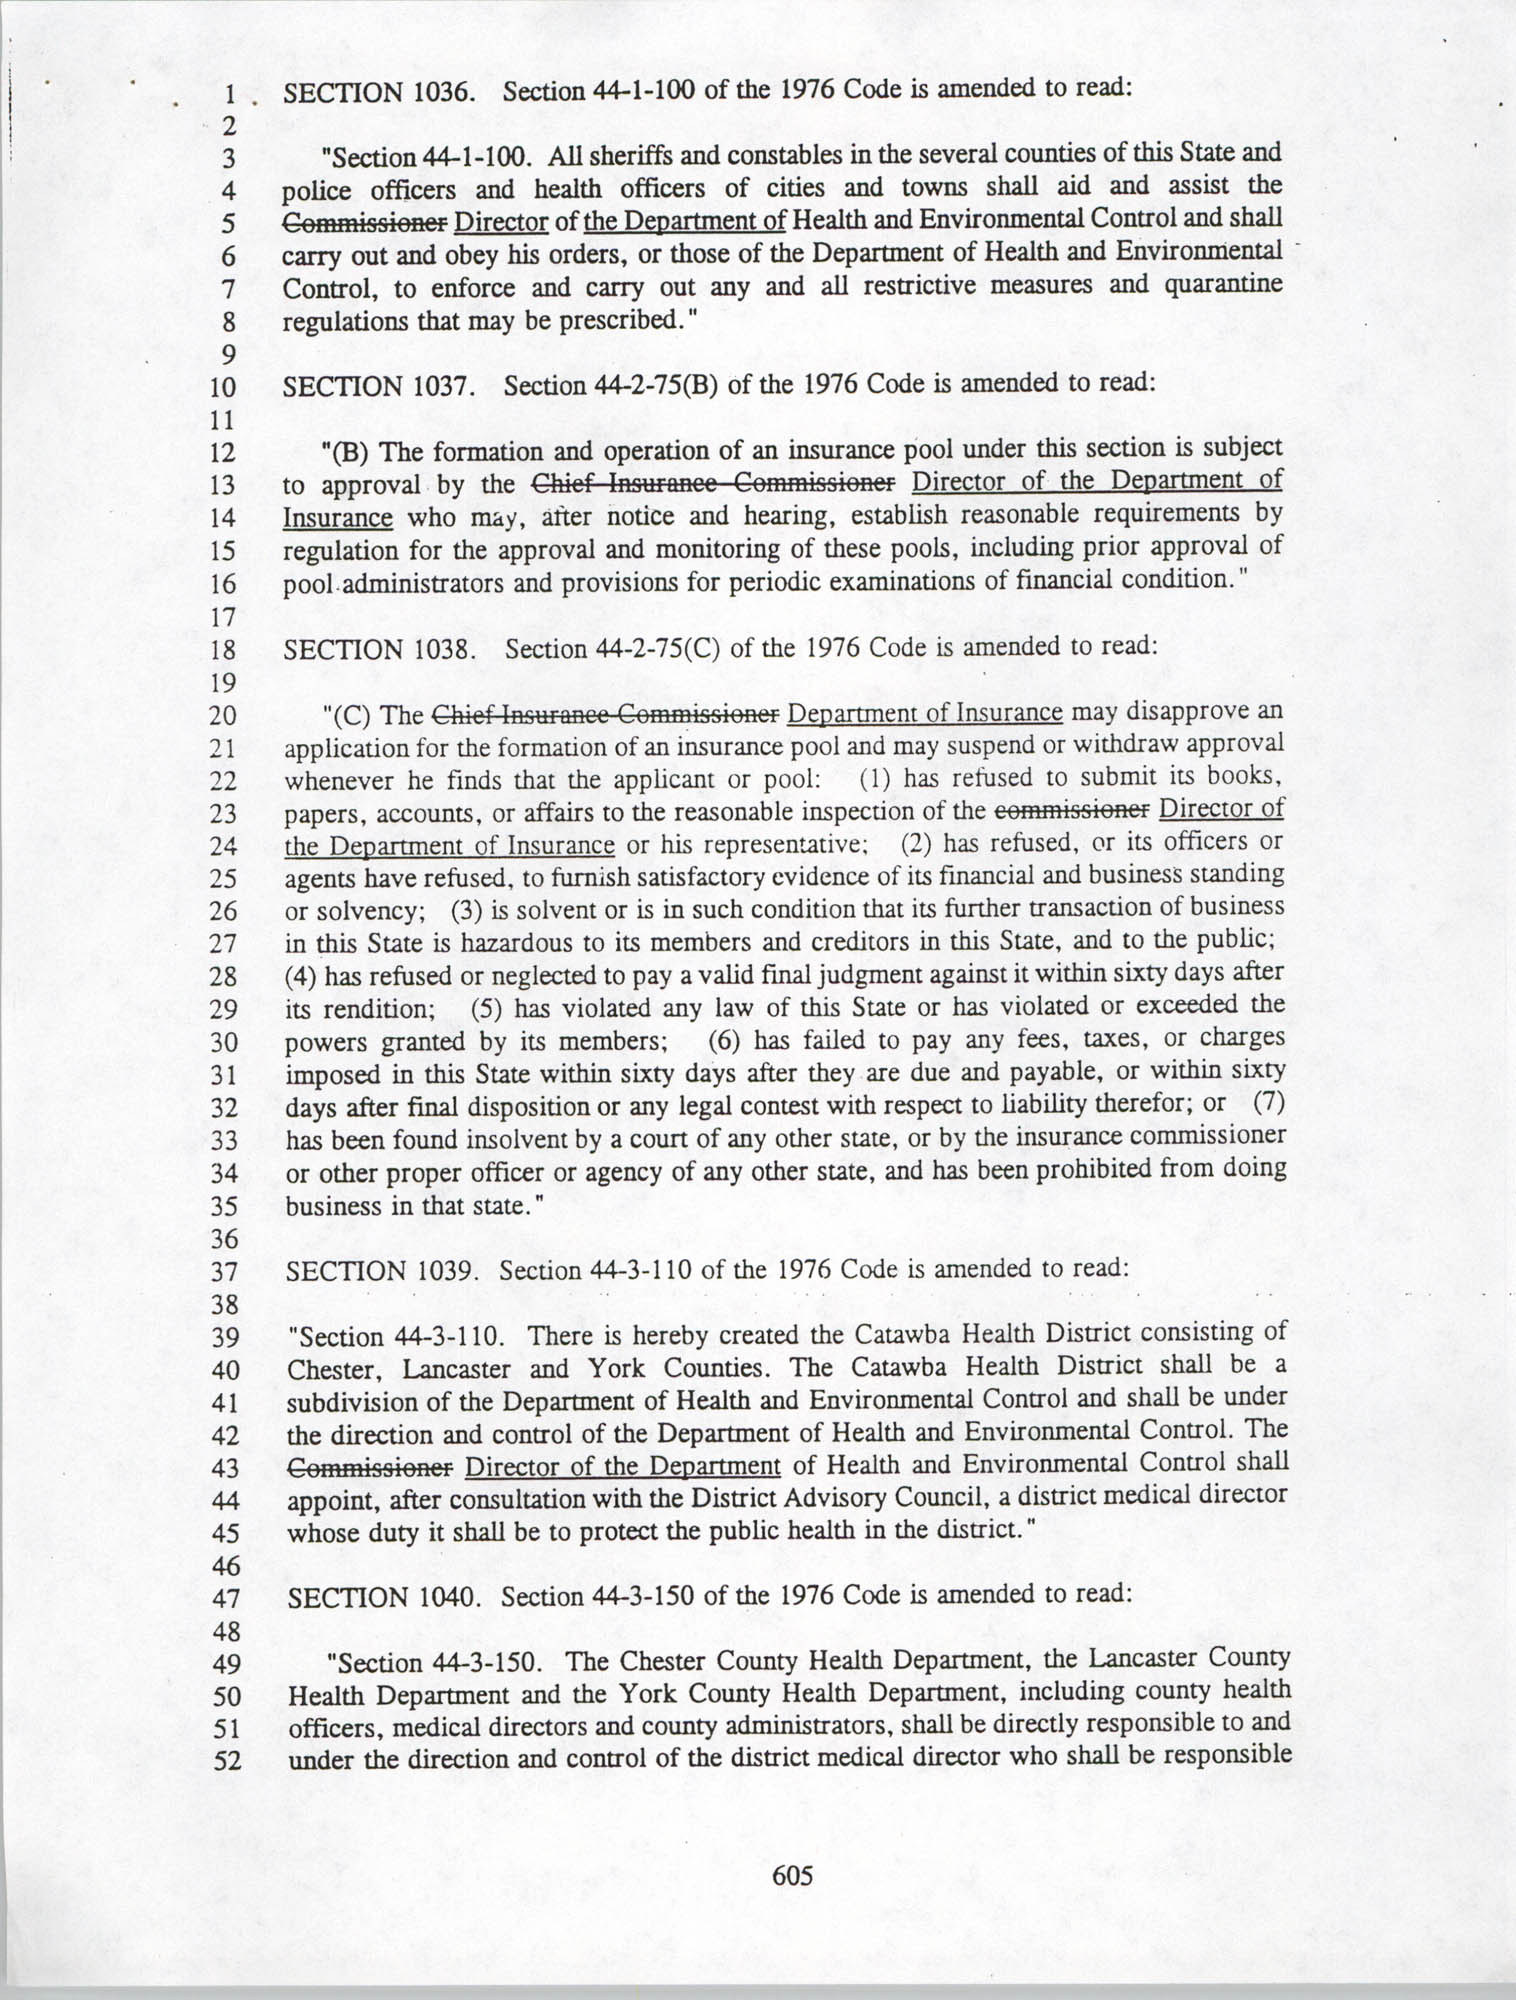 Restructuring Bill, Page 605